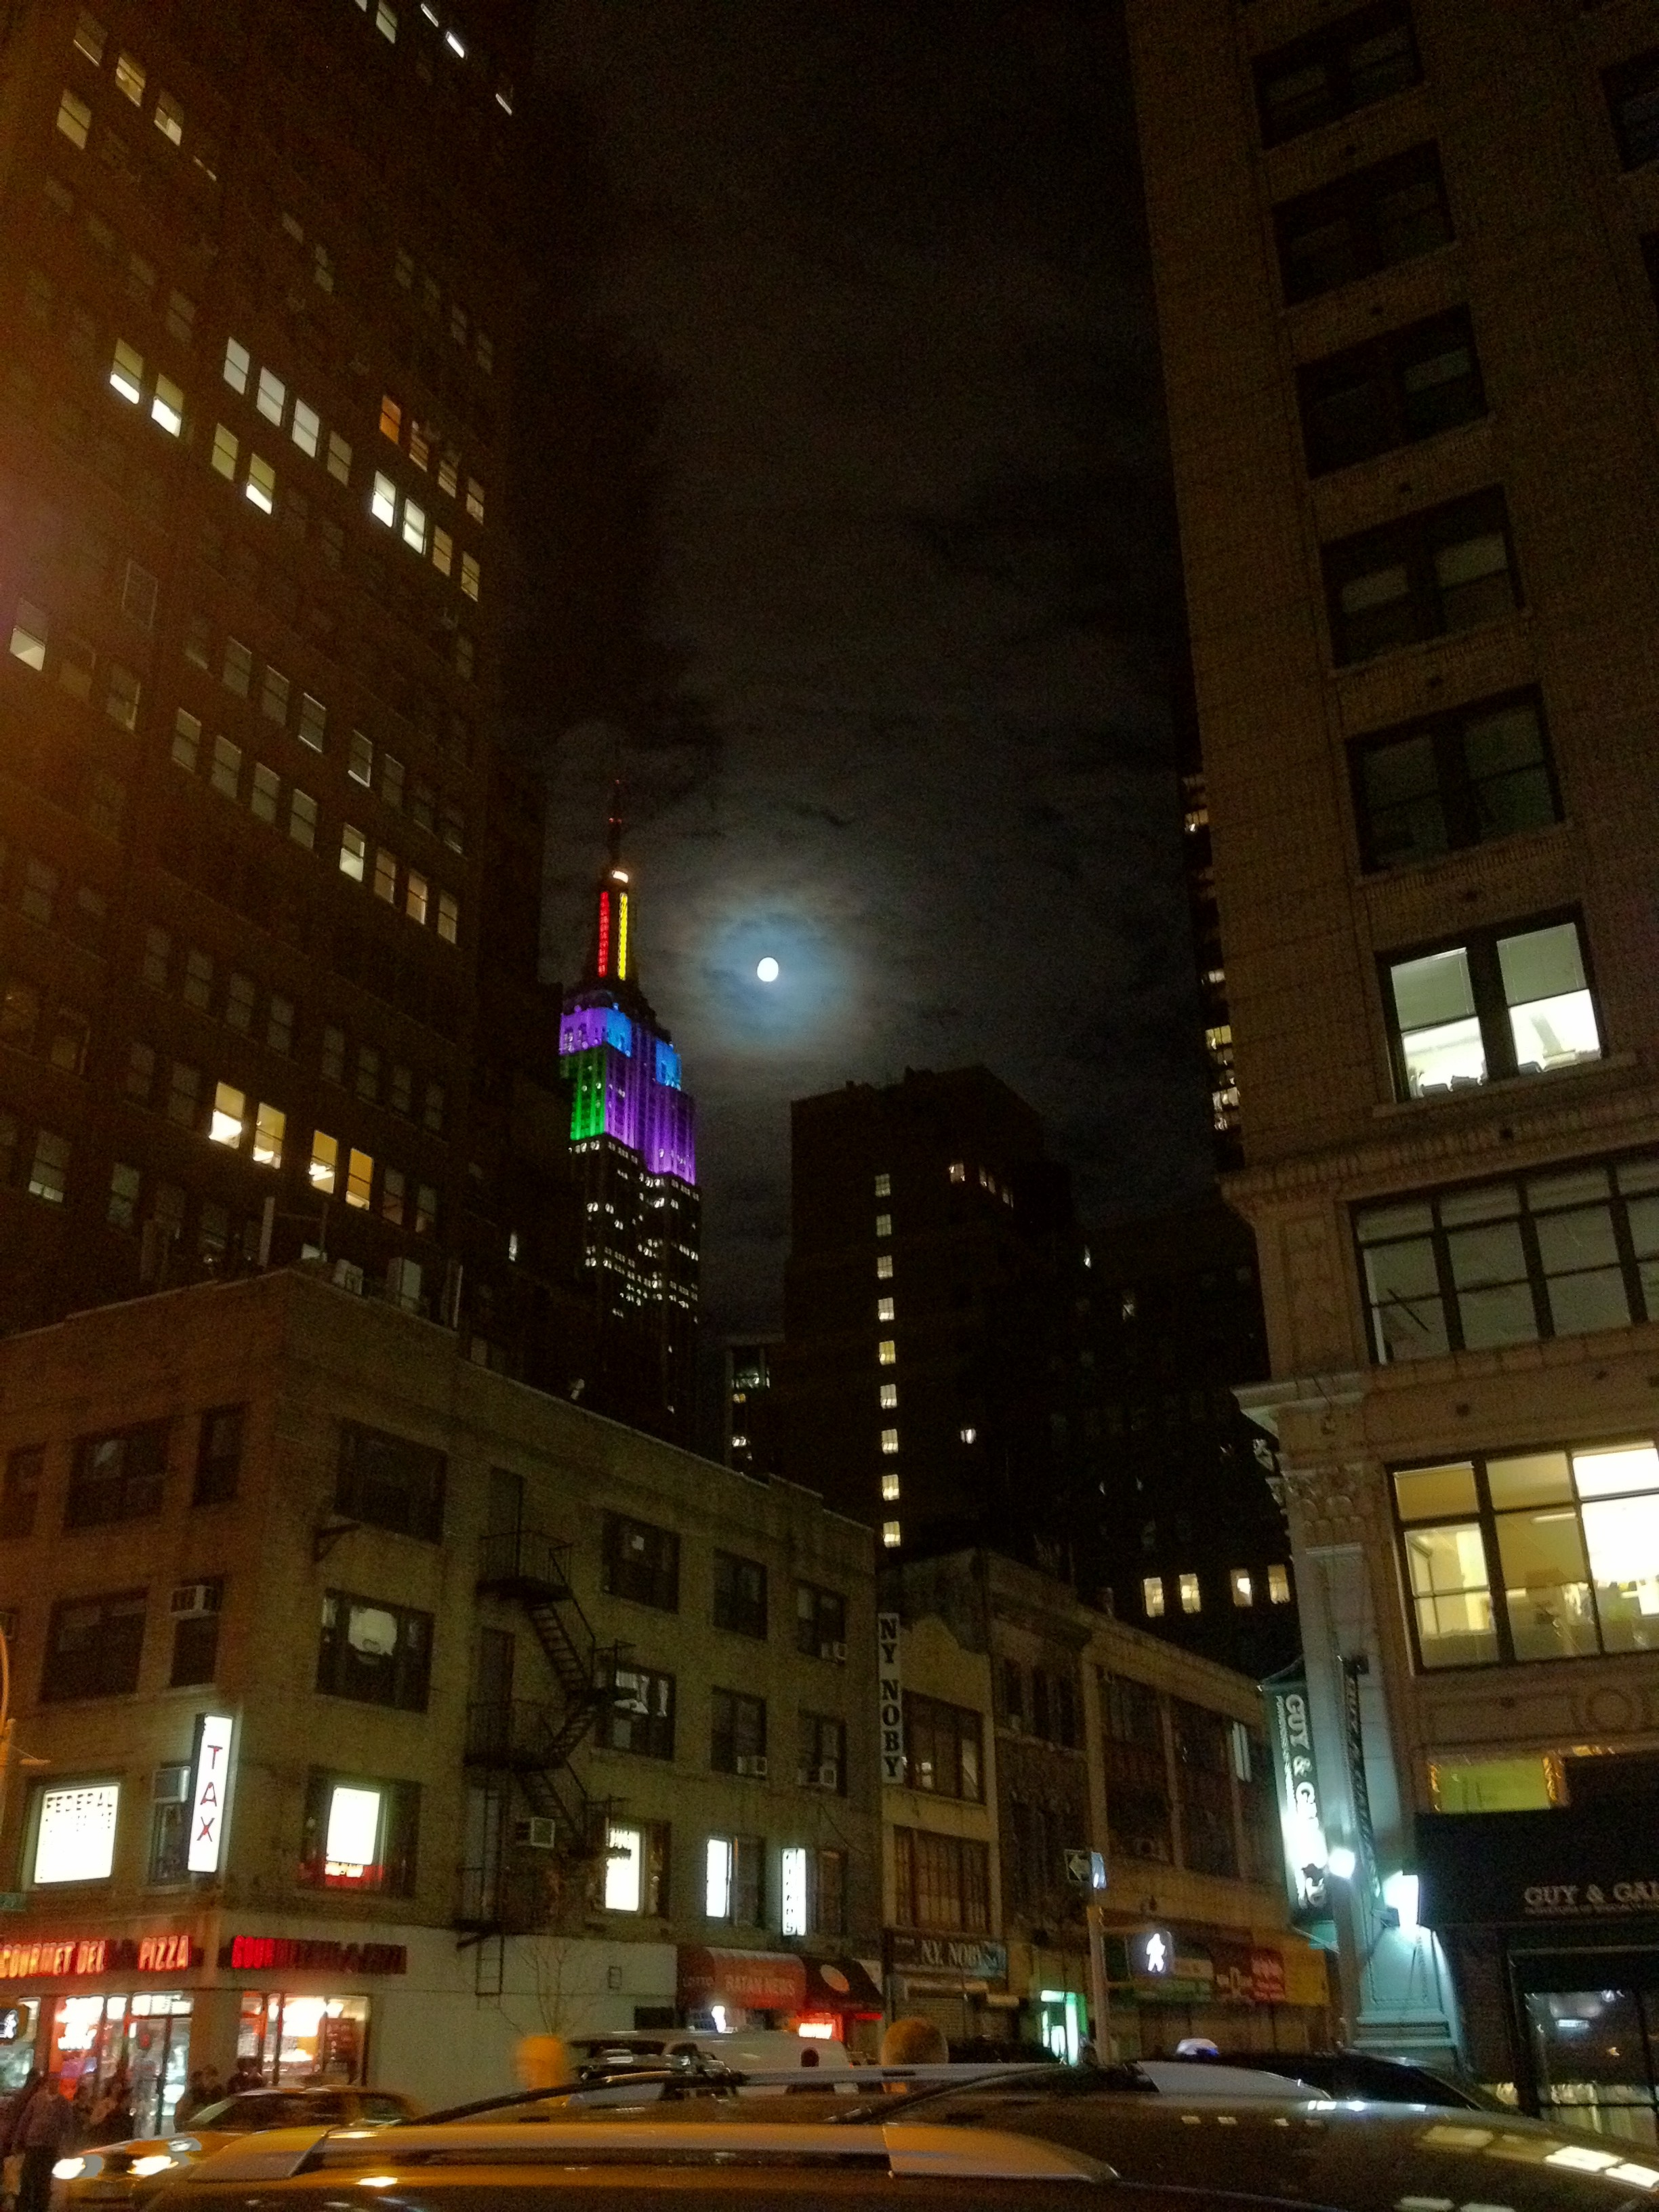 Cool picture of an almost full moon and the Empire State Building